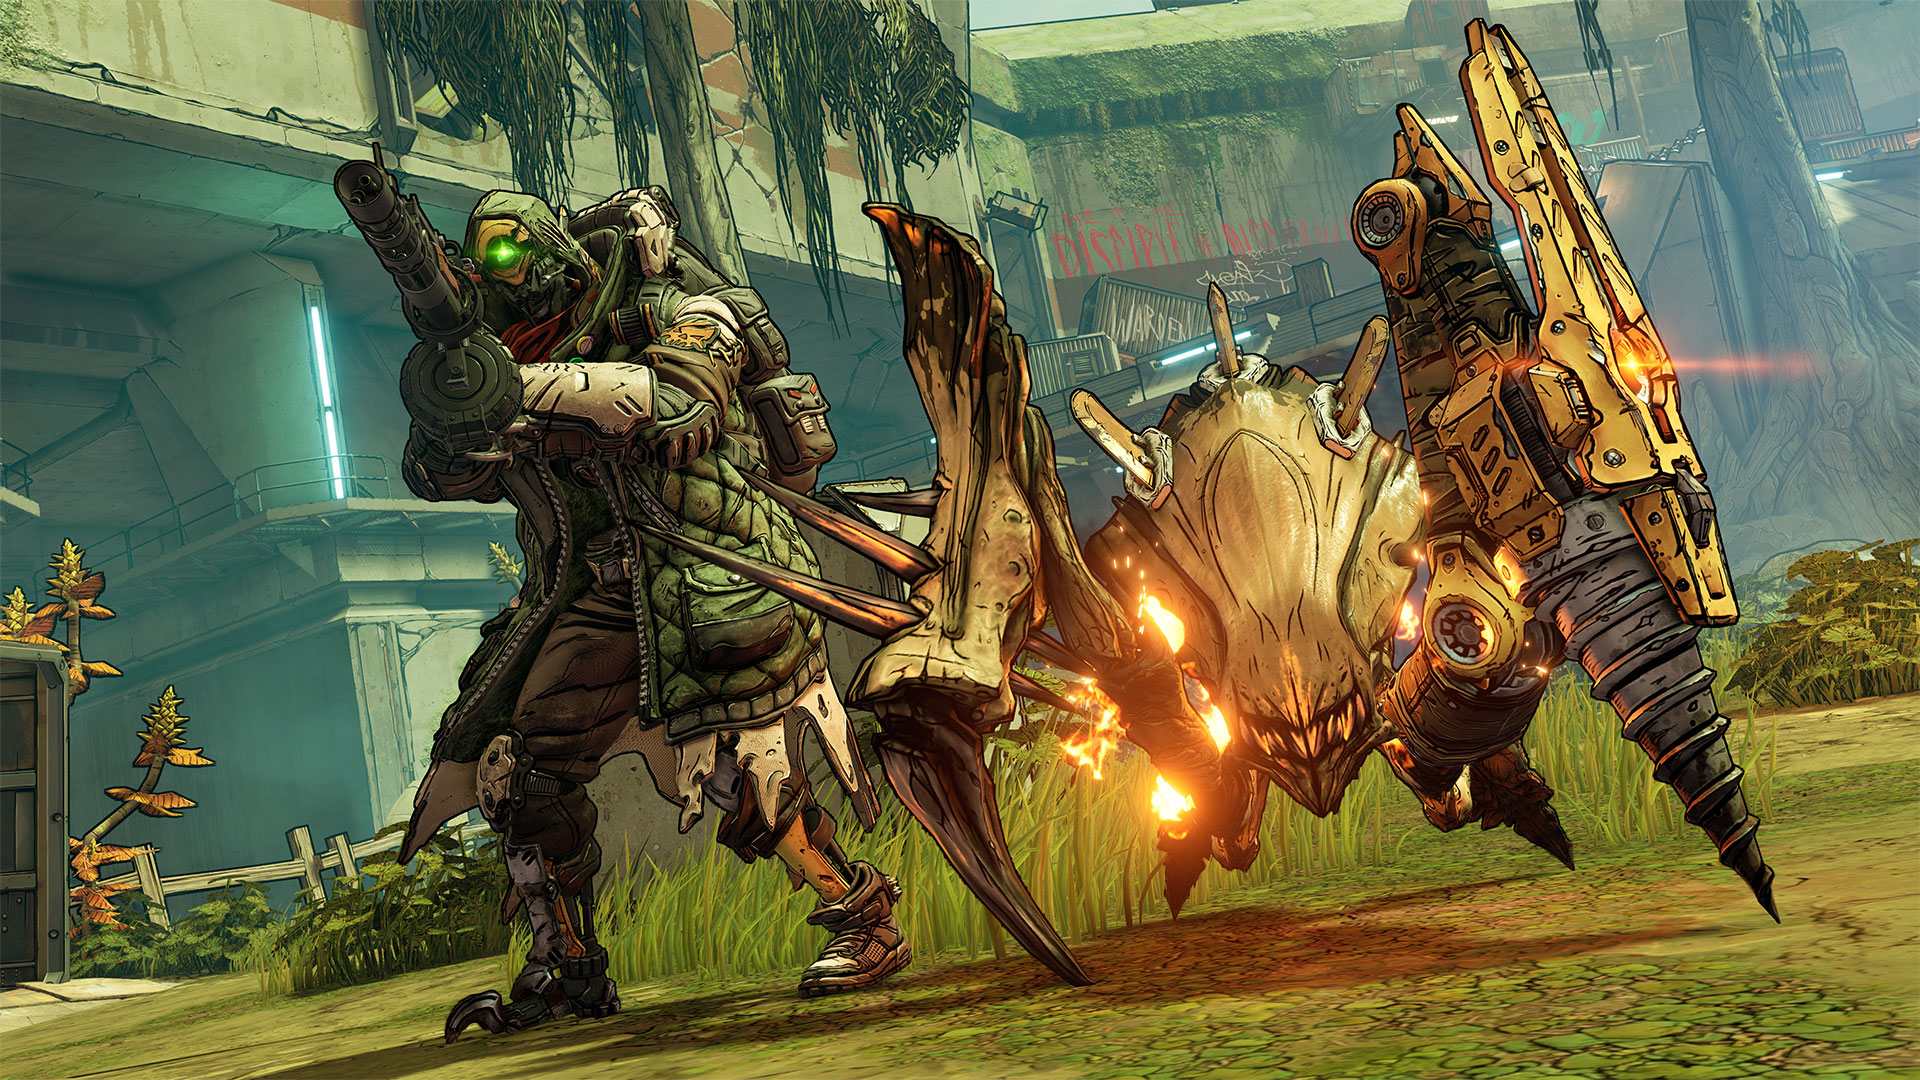 Borderlands 3 Epic Games Store Sales Are Incredibly